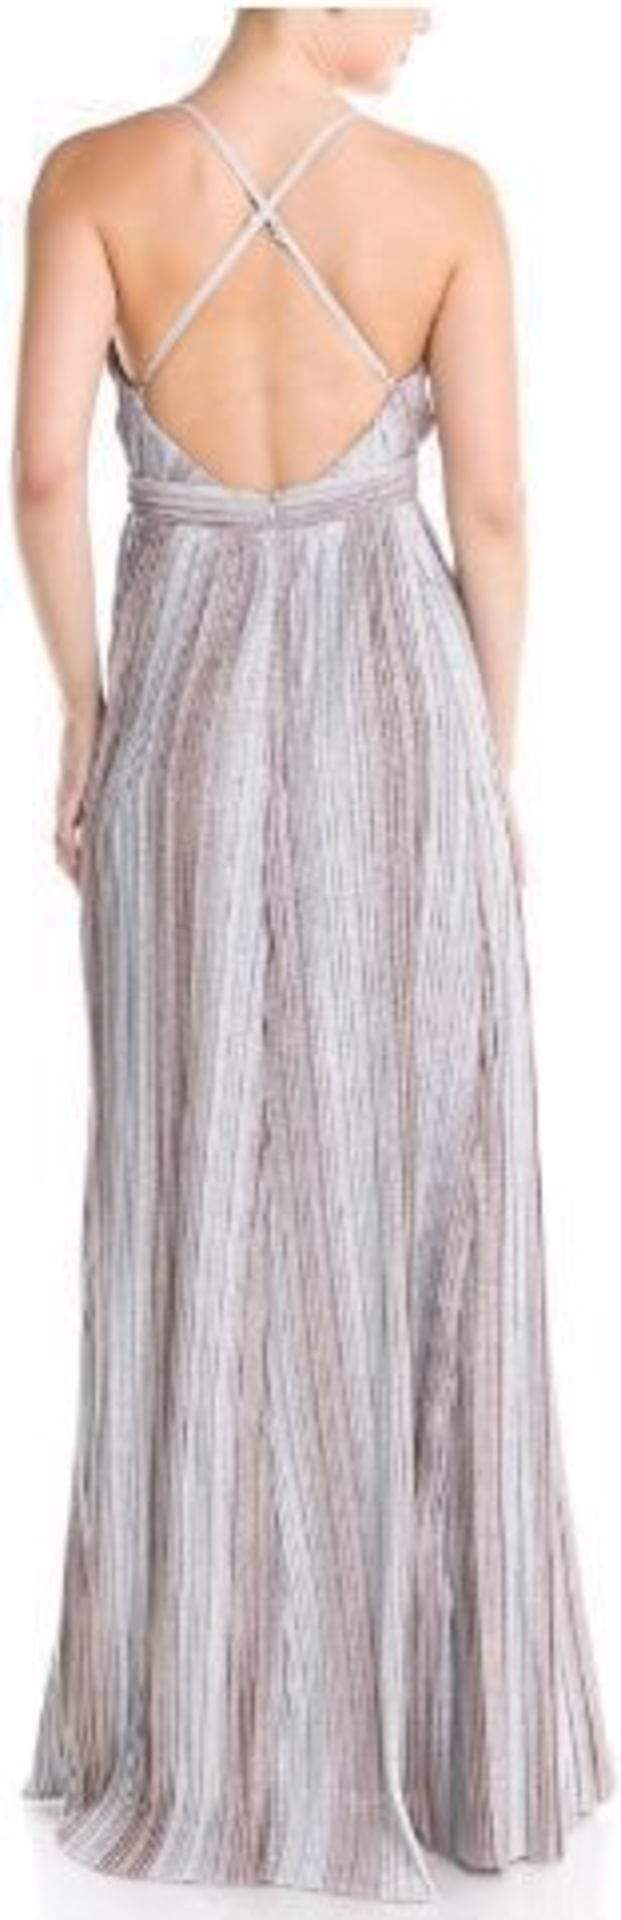 Luxxel Dress Metal Ombre Maxi Dress Silver/Bronze